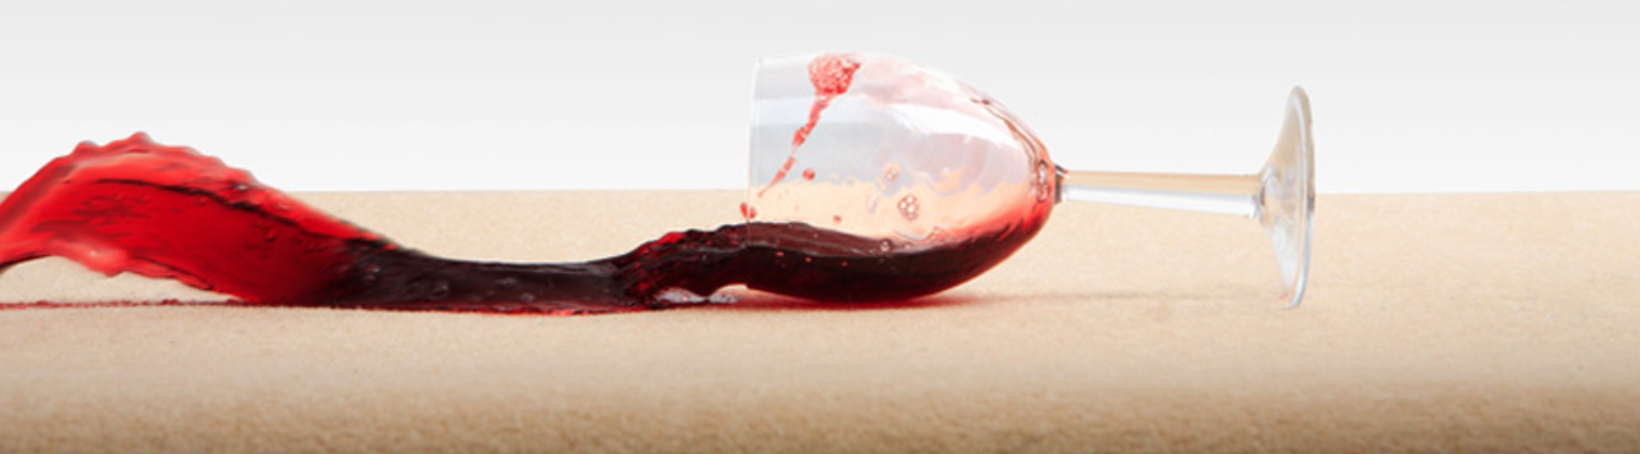 wine spill on rug | wine stain | cleaning stain on rug